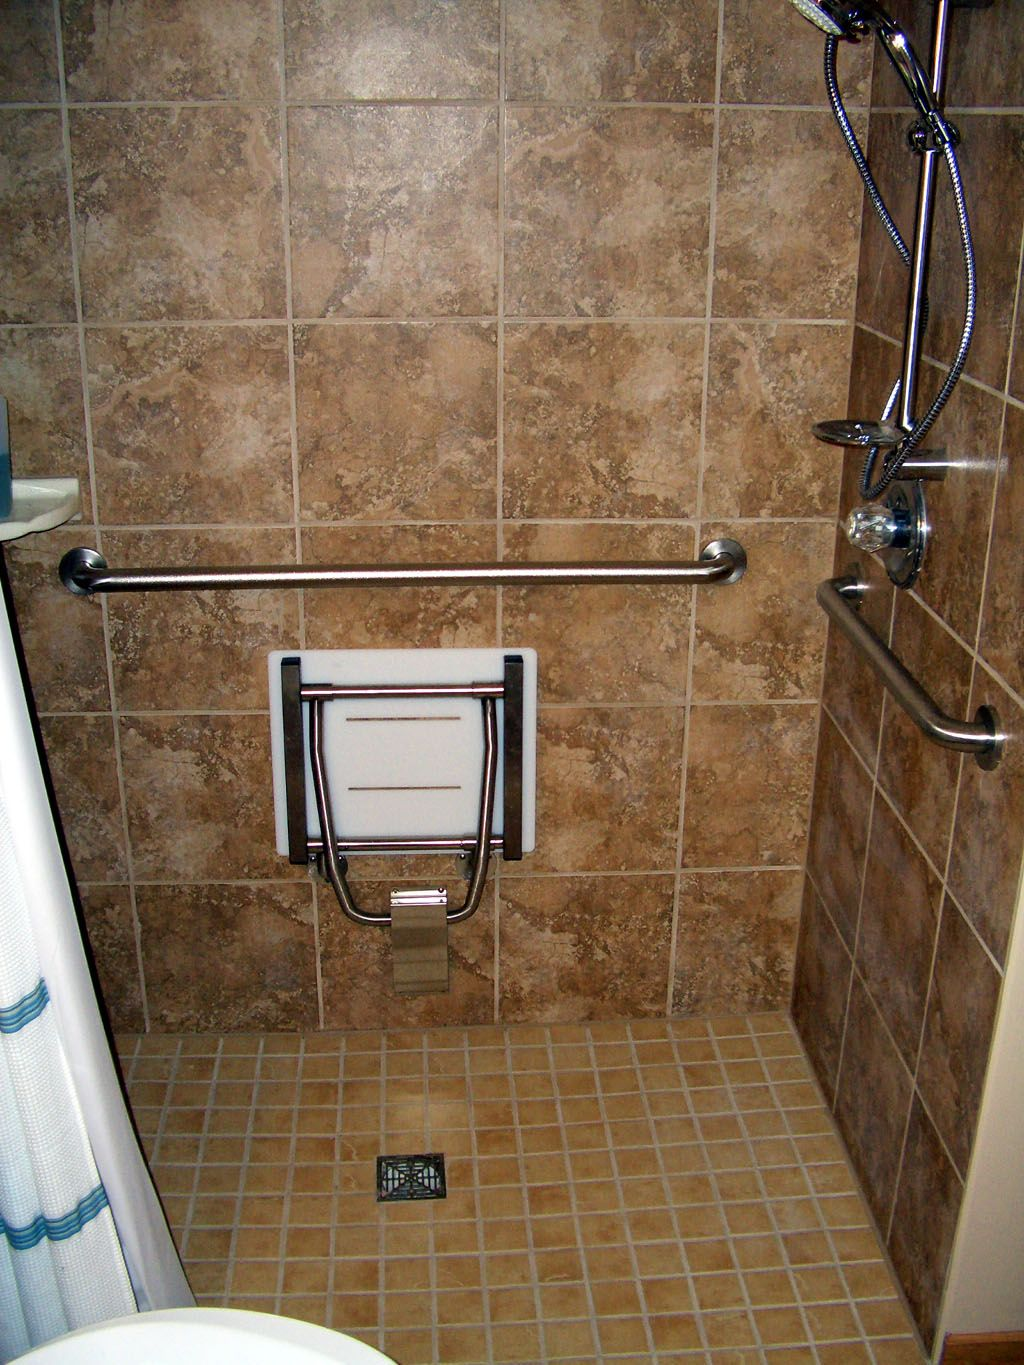 Handicap Bathroom Remodel Disability Remodeling Wheel Chair Handicap Access Minneapolis